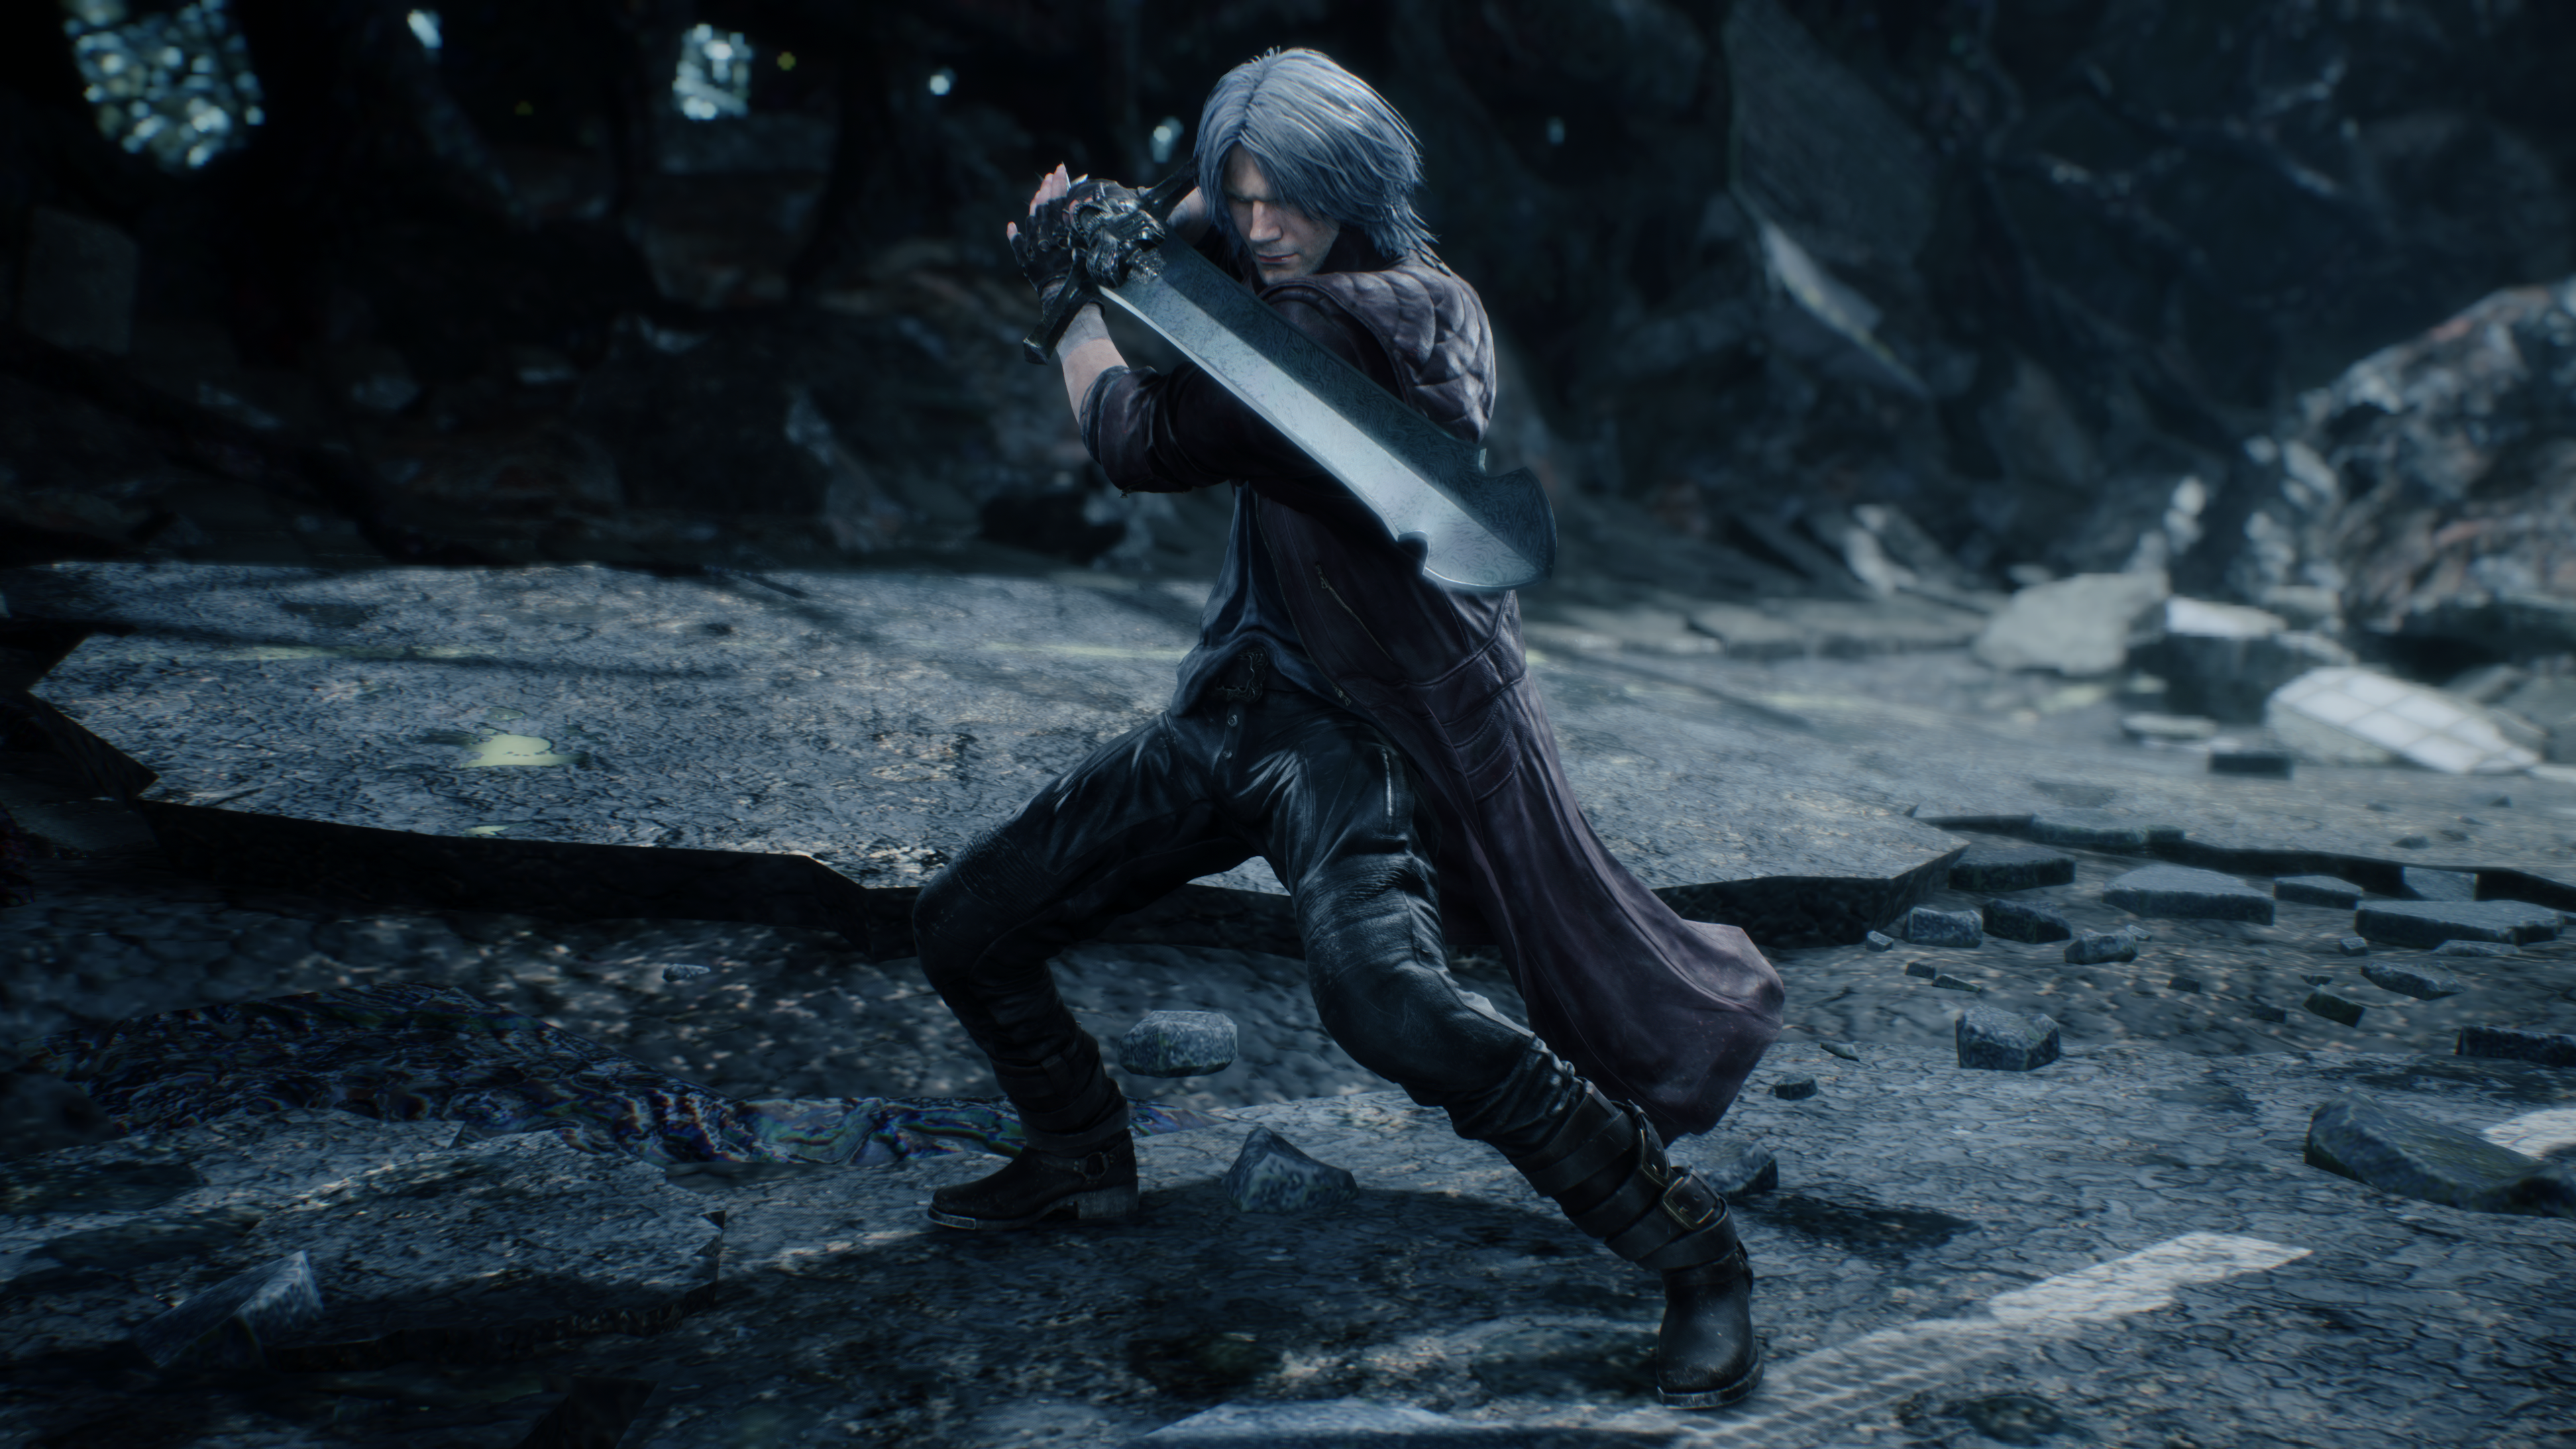 Devil May Cry 5 Dante Action 4k Ultra Hd Wallpaper